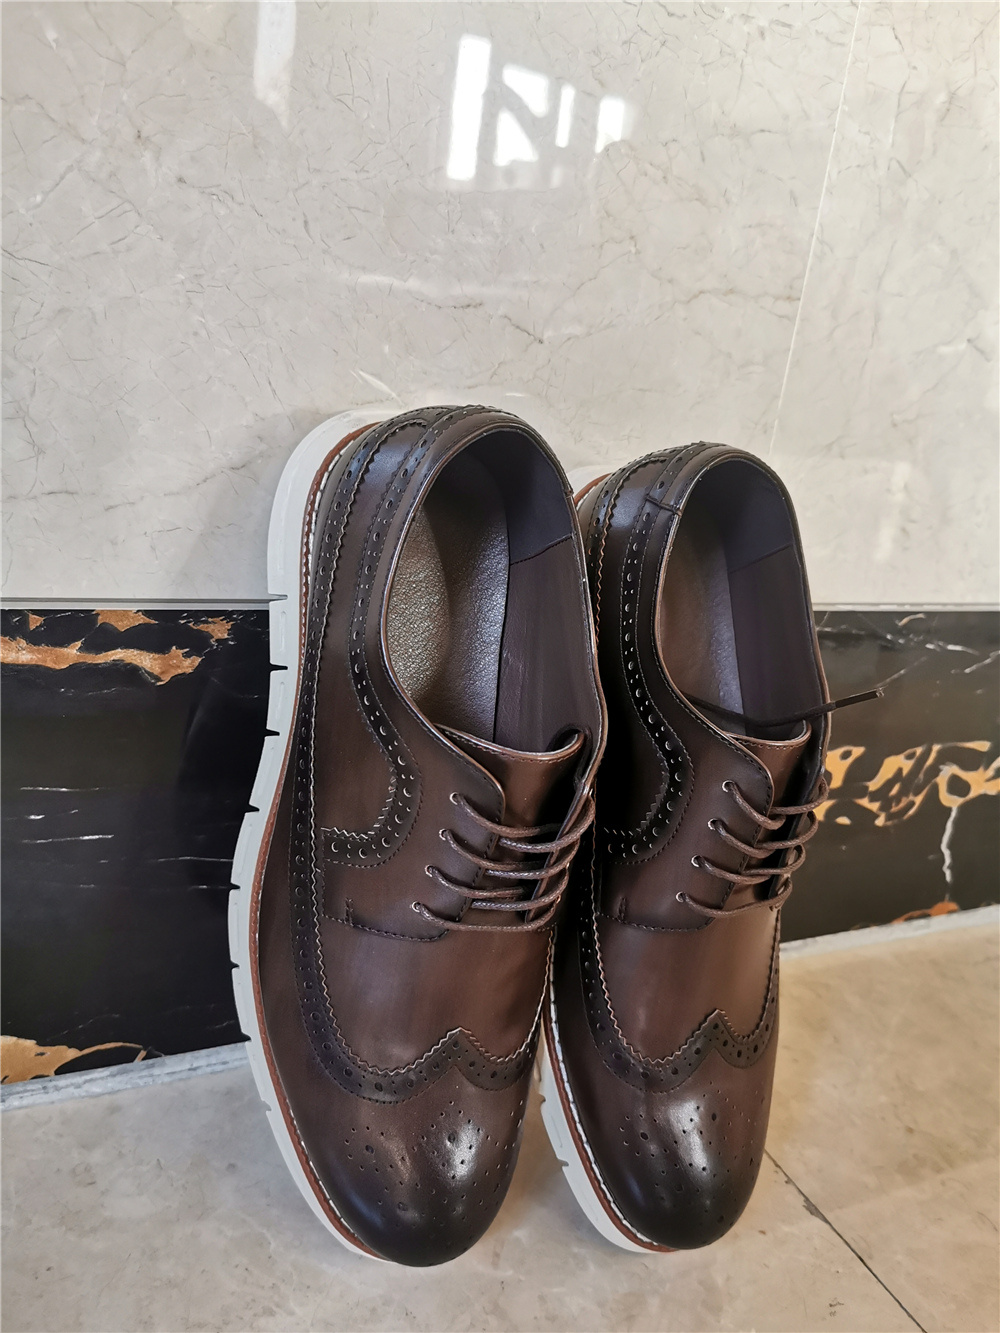 [Best Seller] Men's Leather Casual Brogues photo review